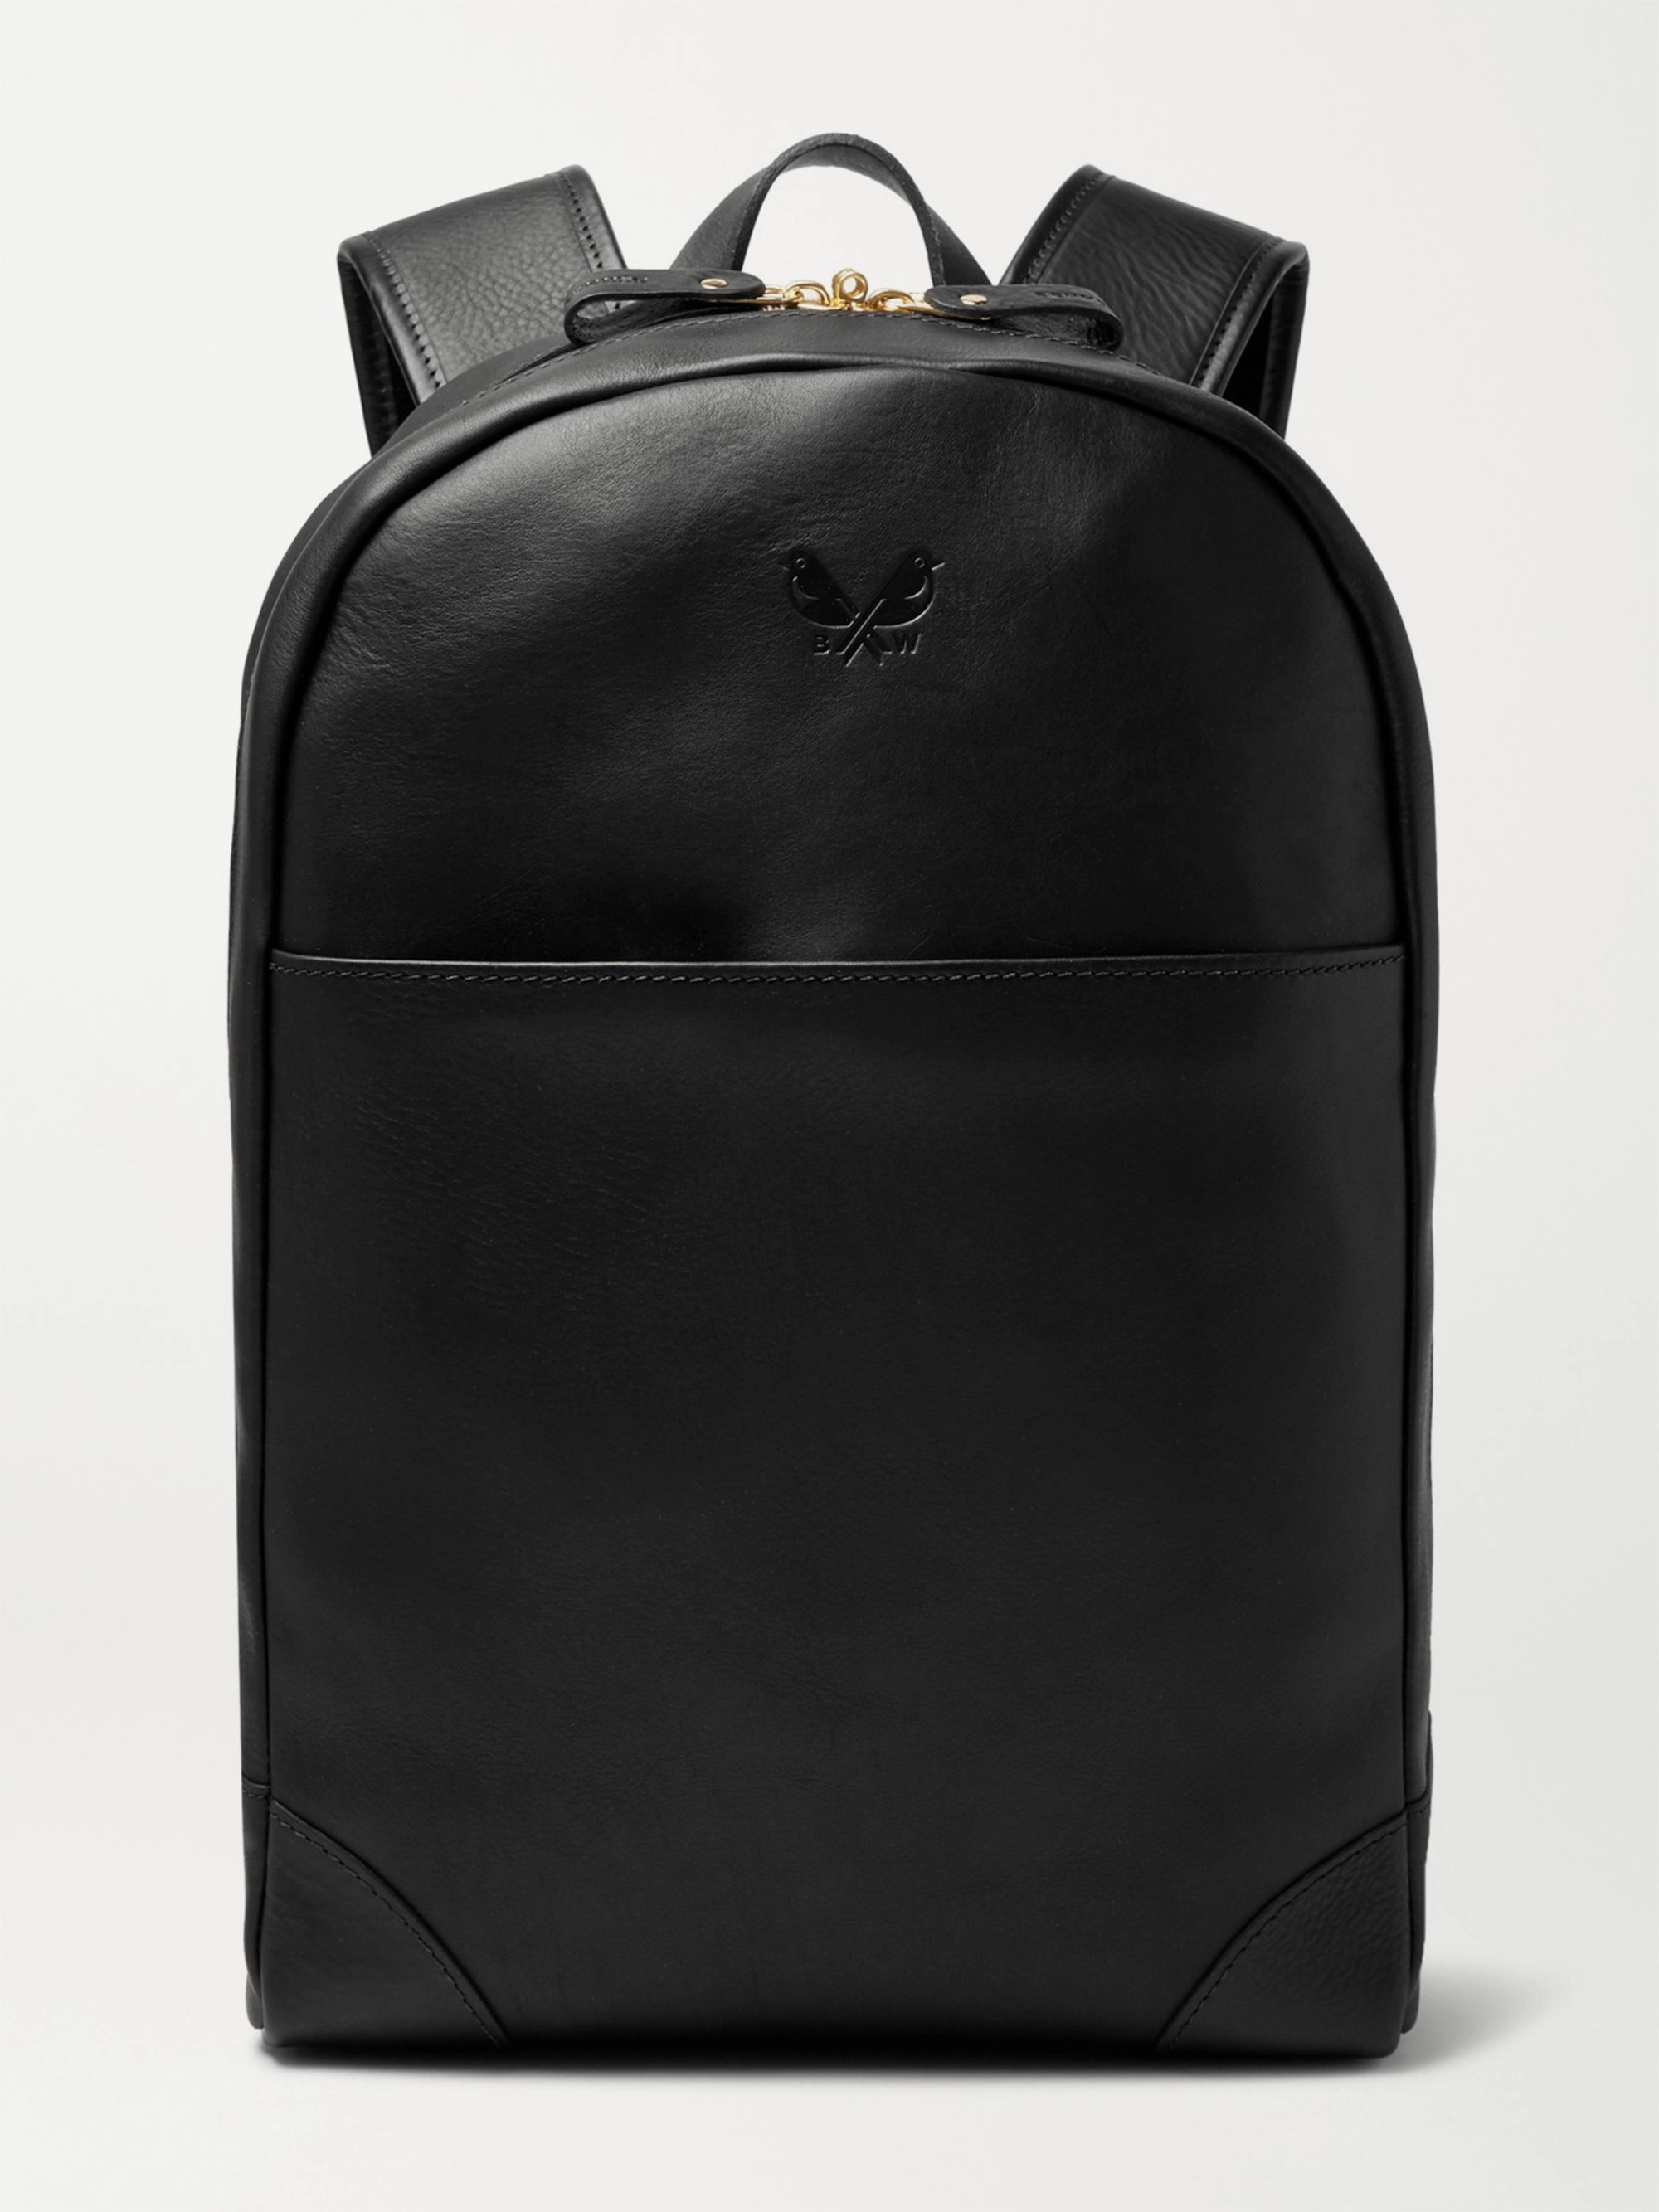 Bennett Winch Full-Grain Leather Backpack